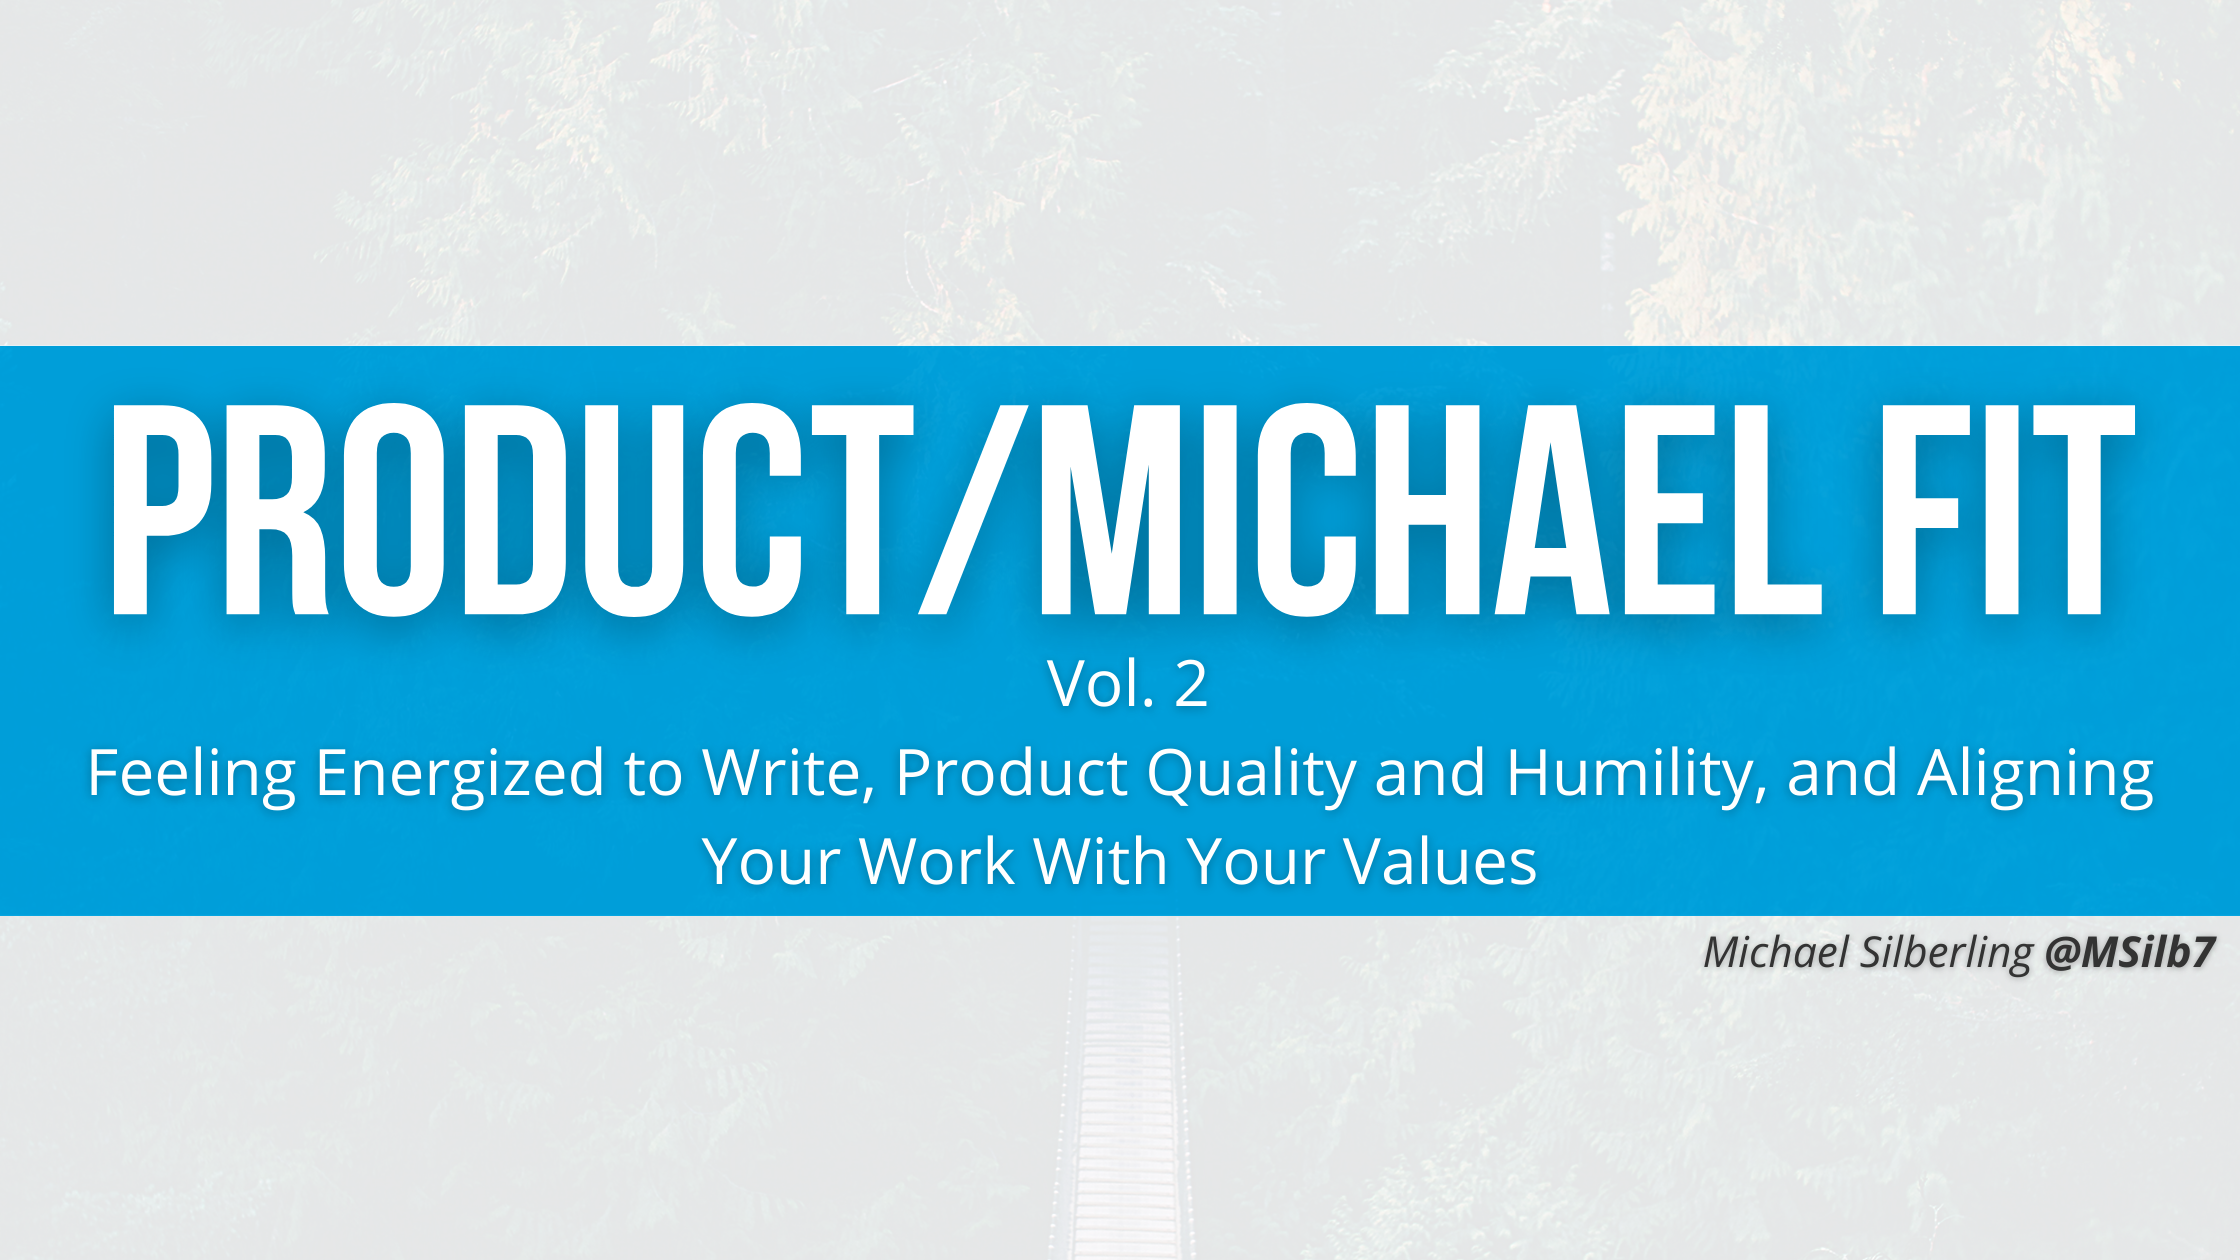 Product/Michael Fit: Vol. 2 | 11/8/20